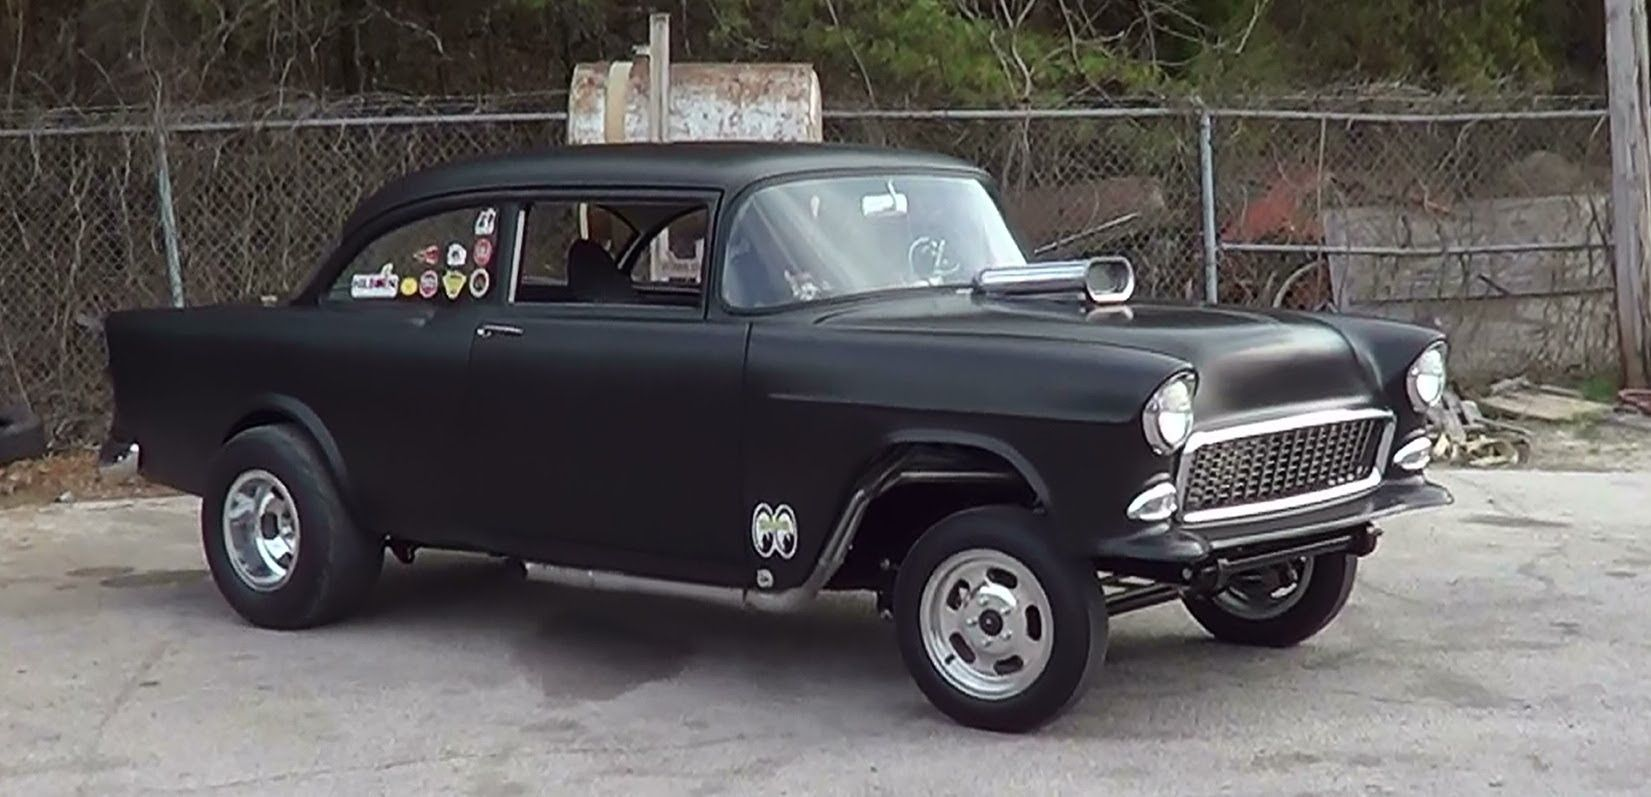 1955 chevrolet hot rod truck pictures to pin on pinterest - 52 Chevy Gasser On The Street